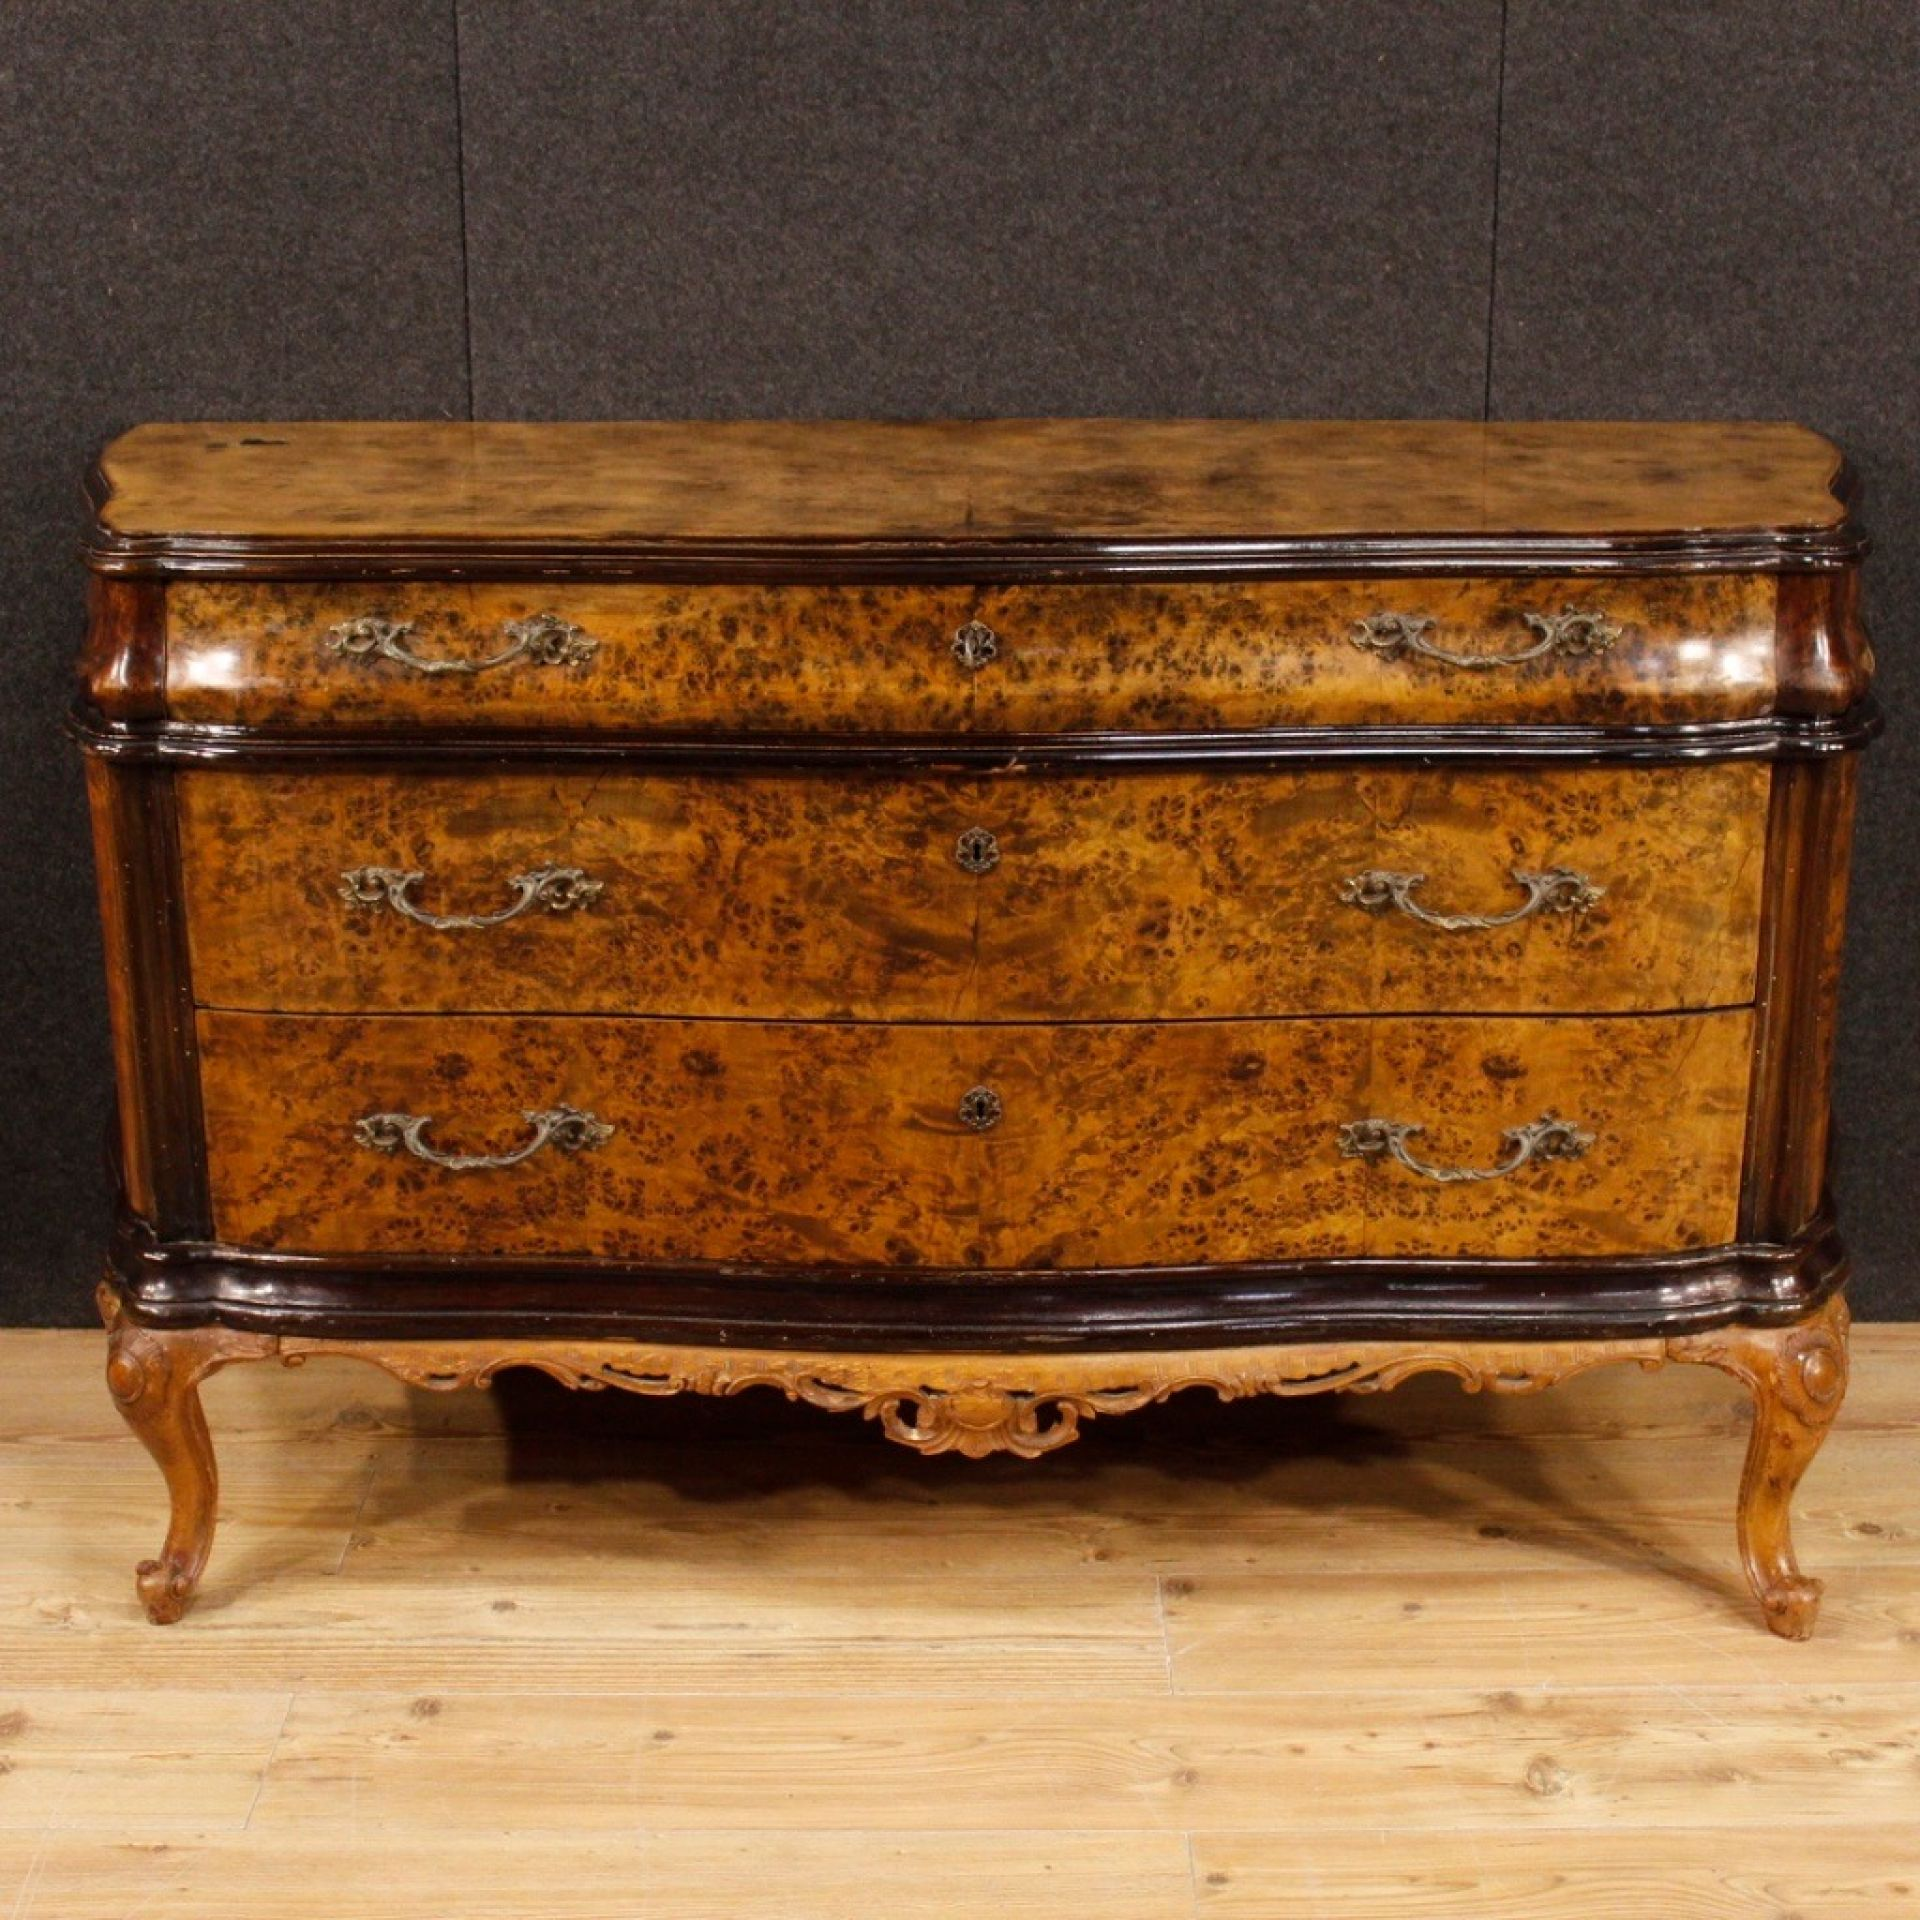 20th Century Burl, Beech And Wood Italian Dresser With 3 Drawers, 1960